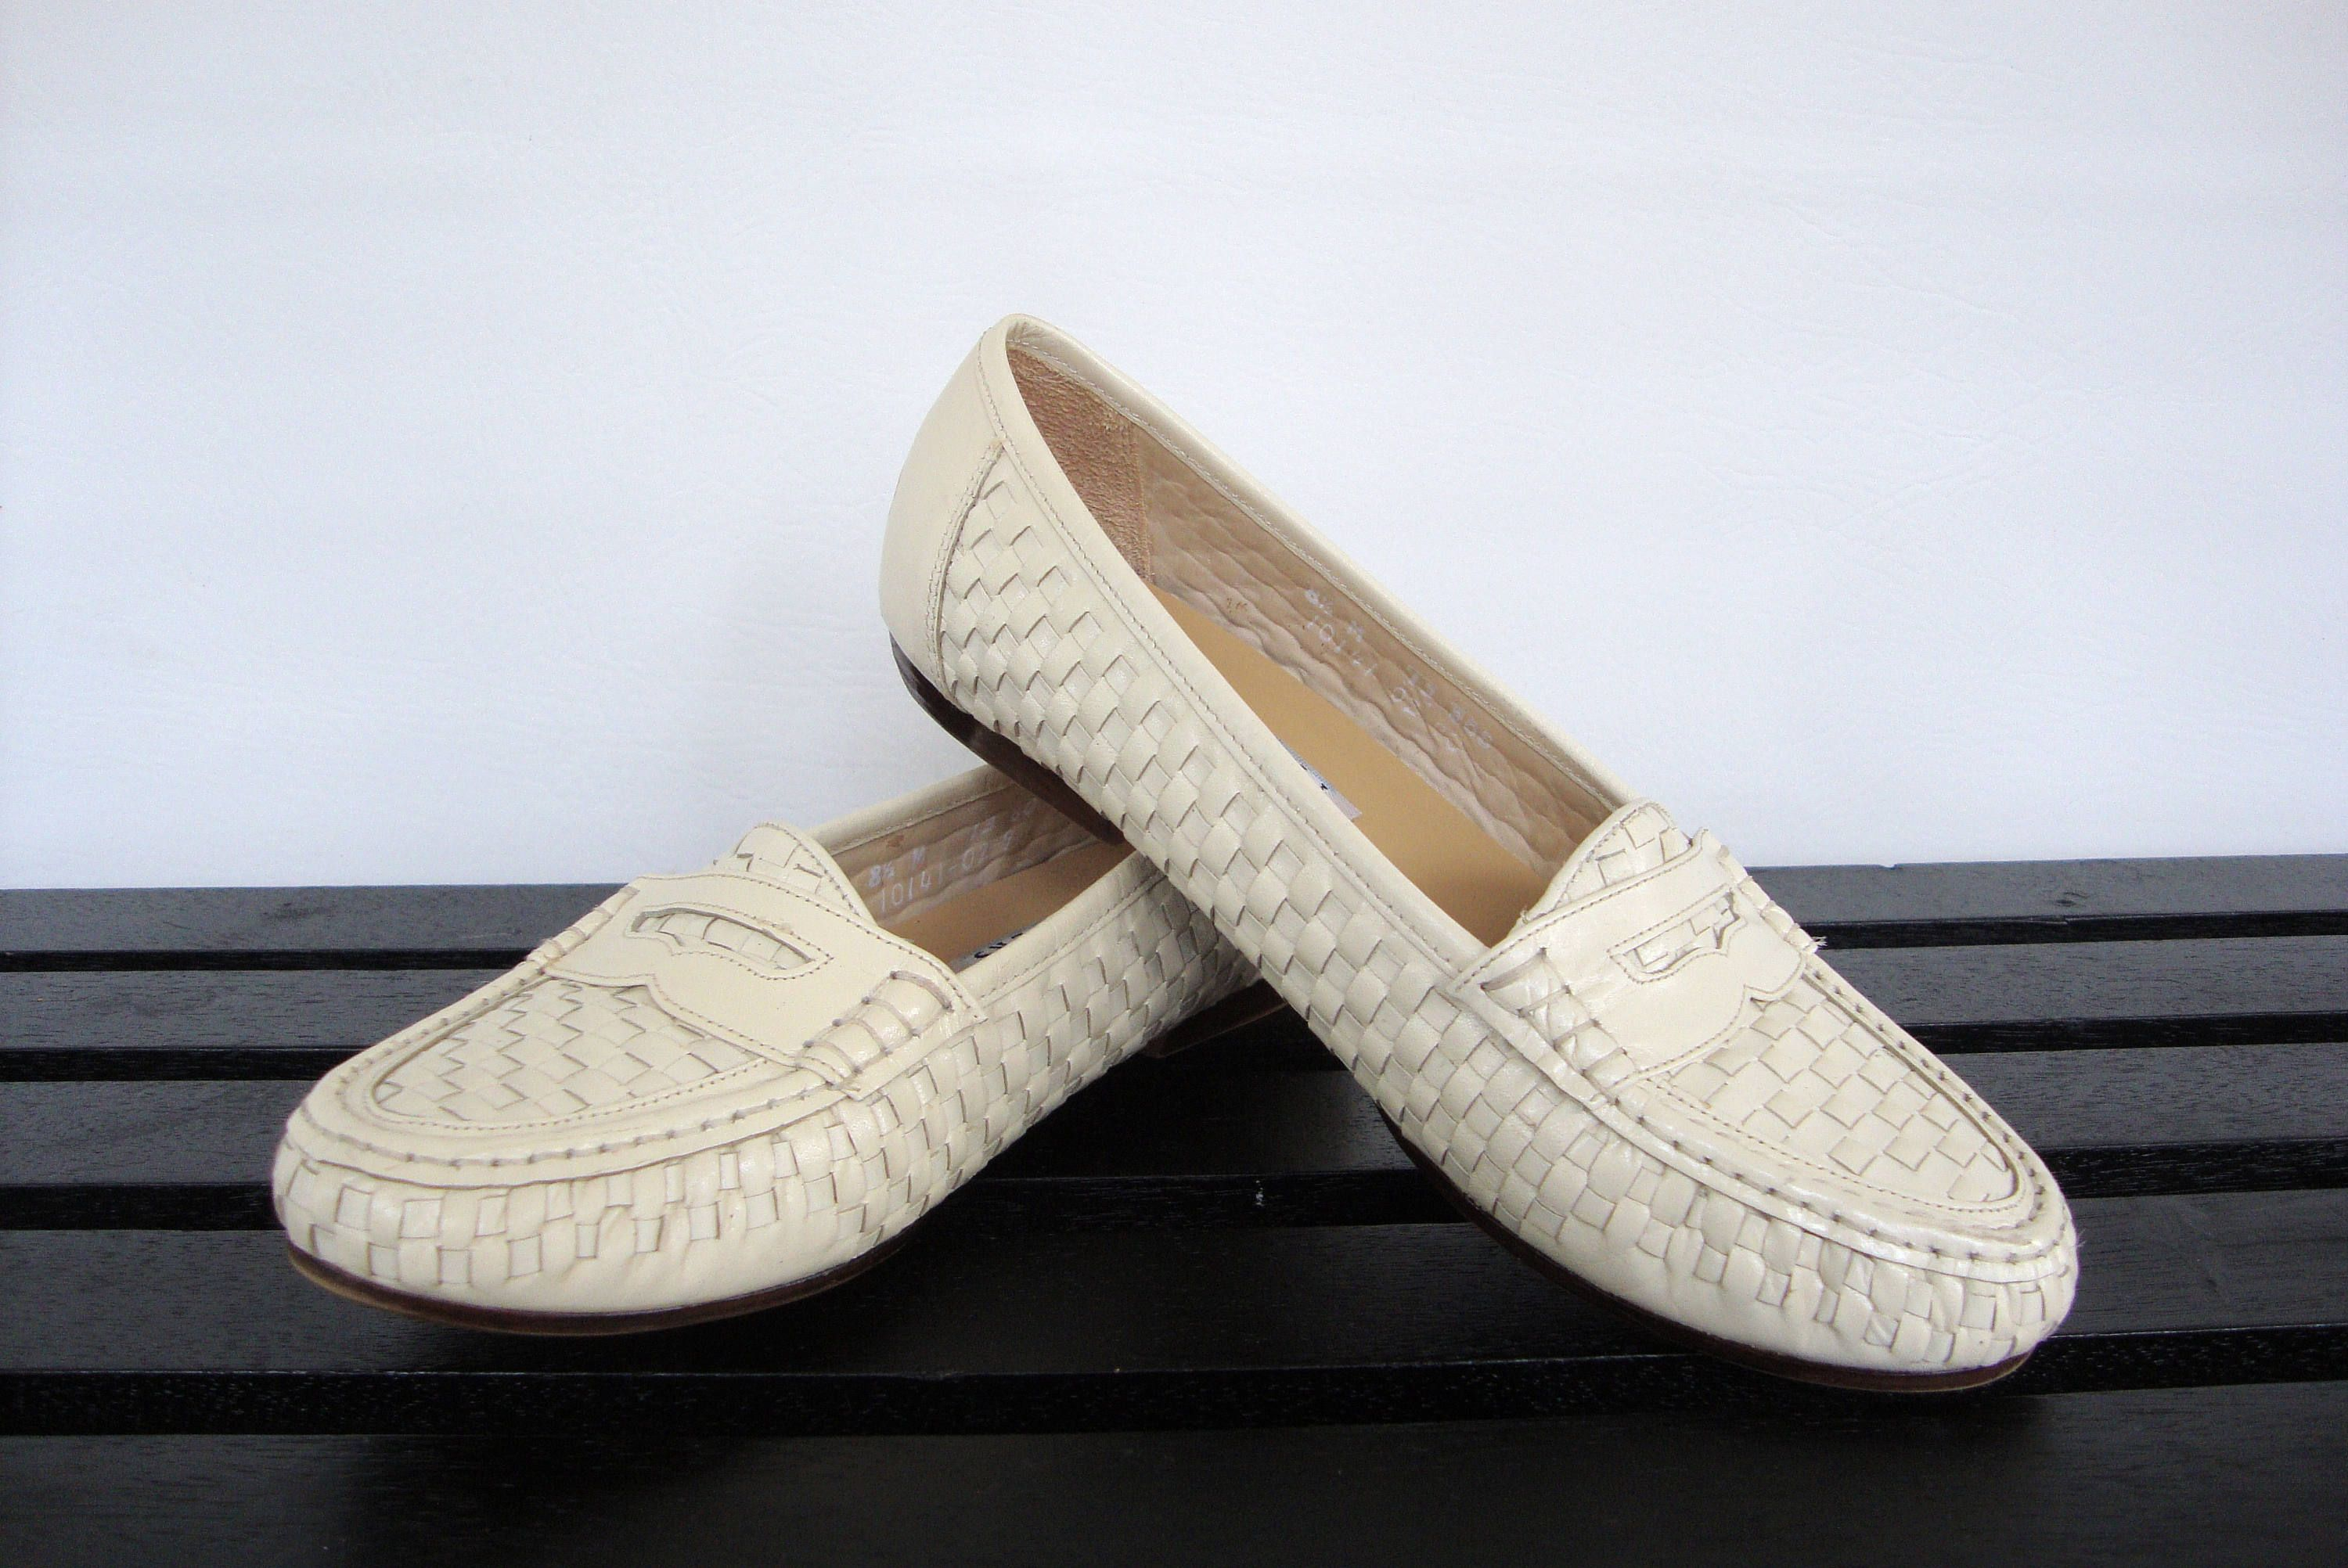 Woven Leather Loafers Womens 8.5 Beige